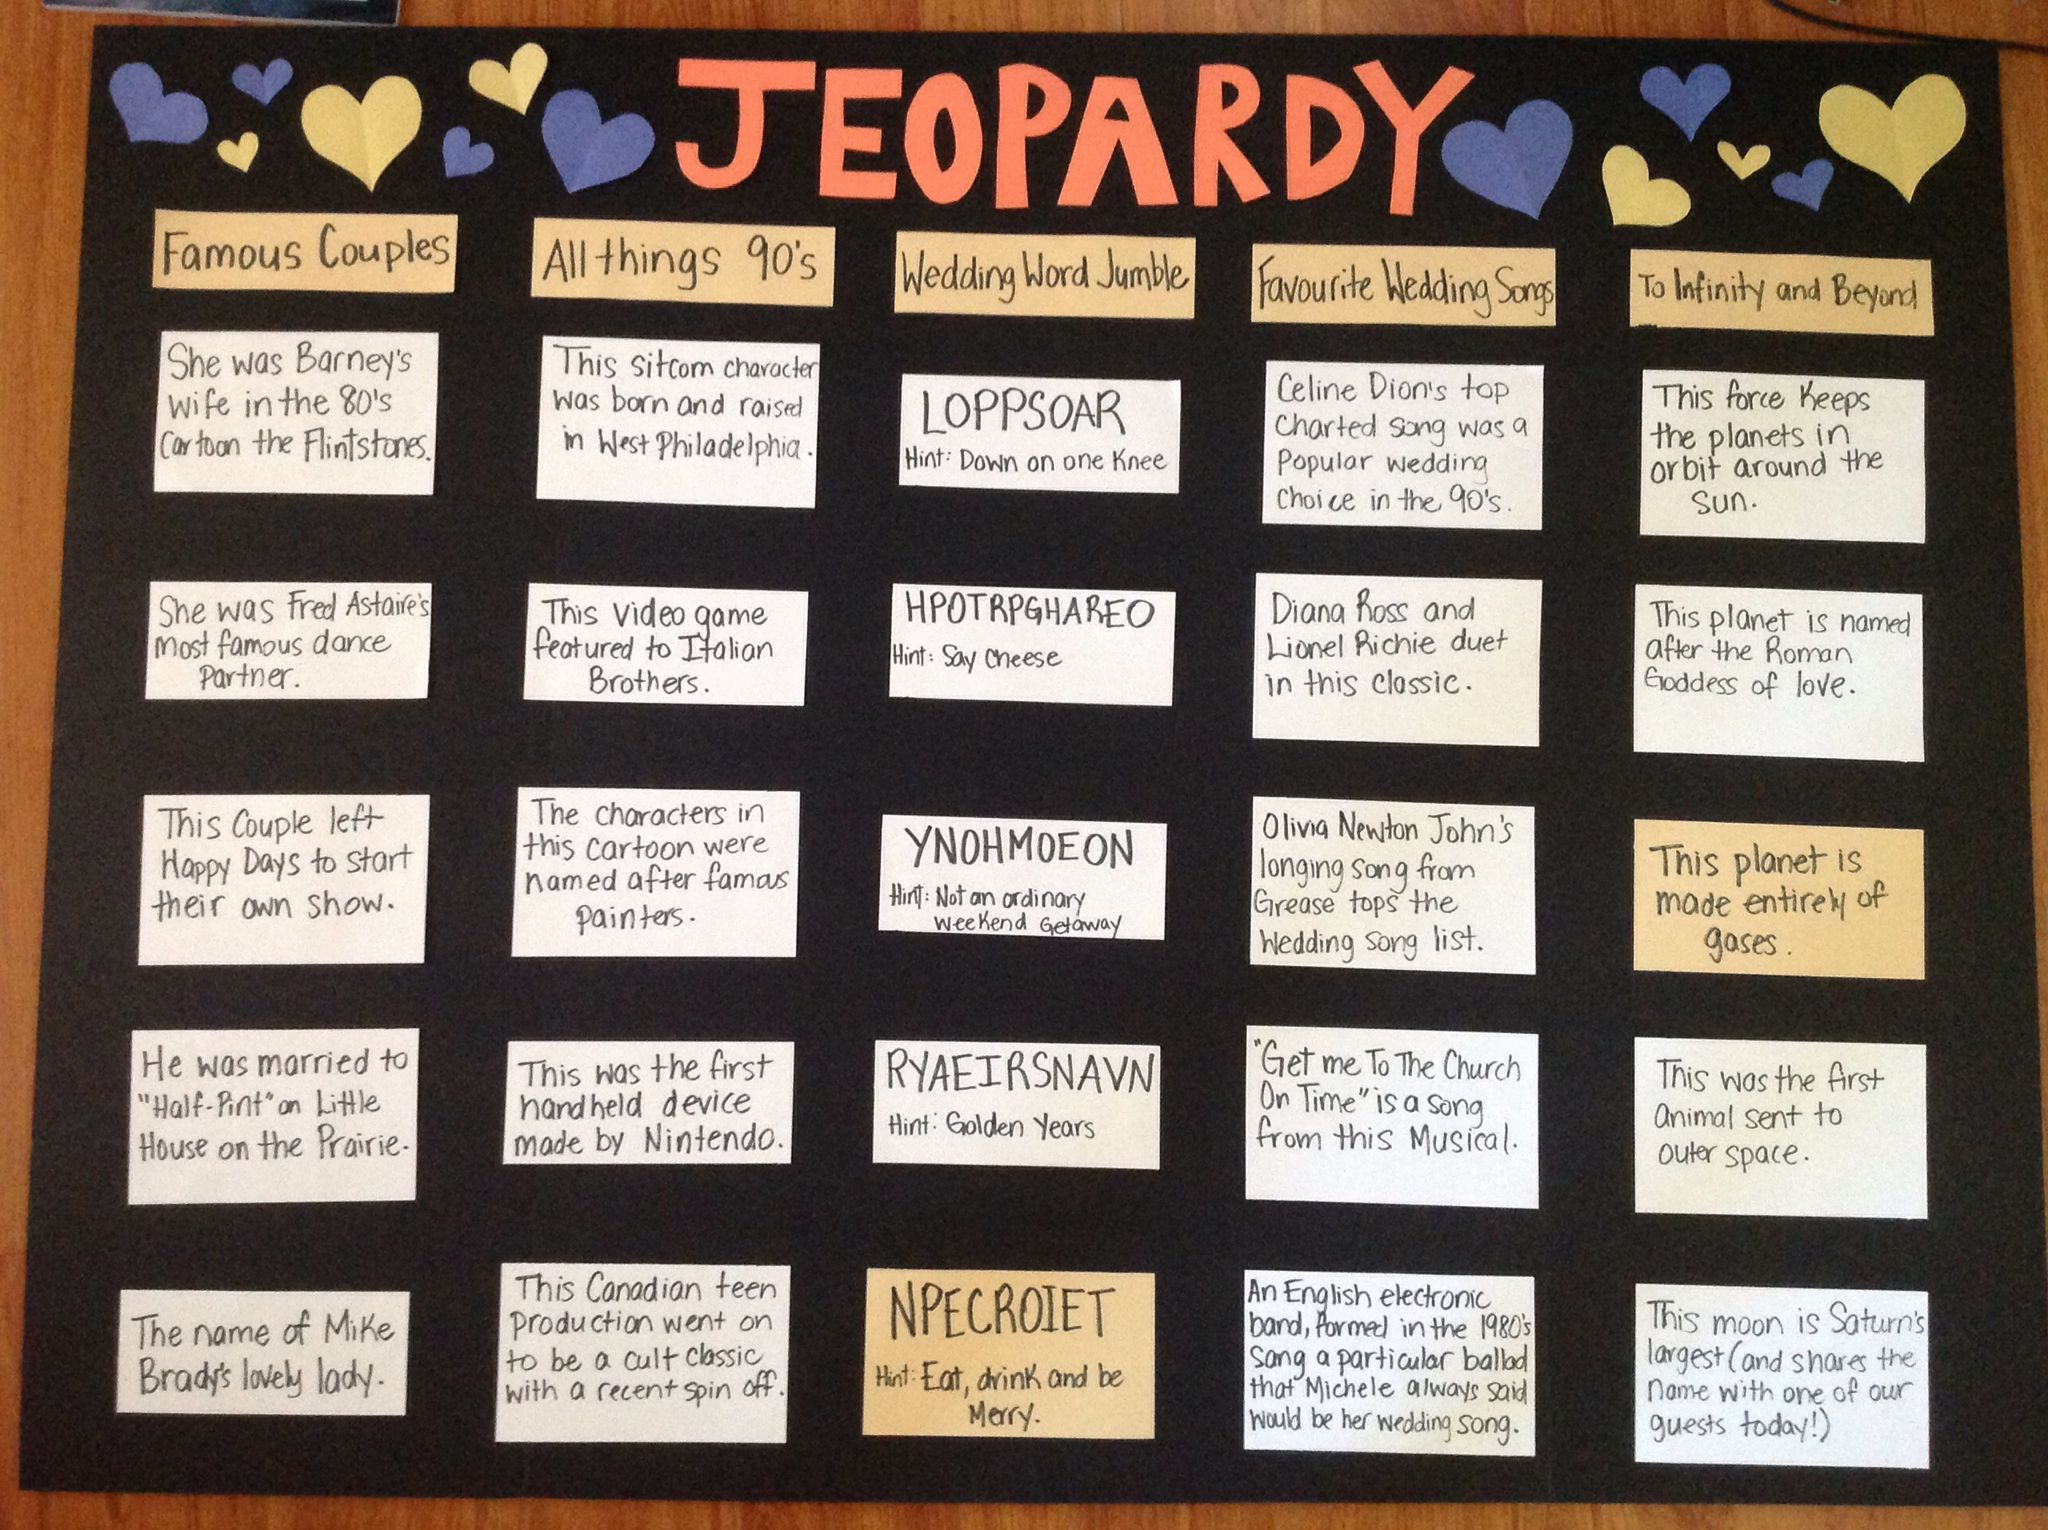 Jeopardy questions for Jack and Jill party Make it personal or